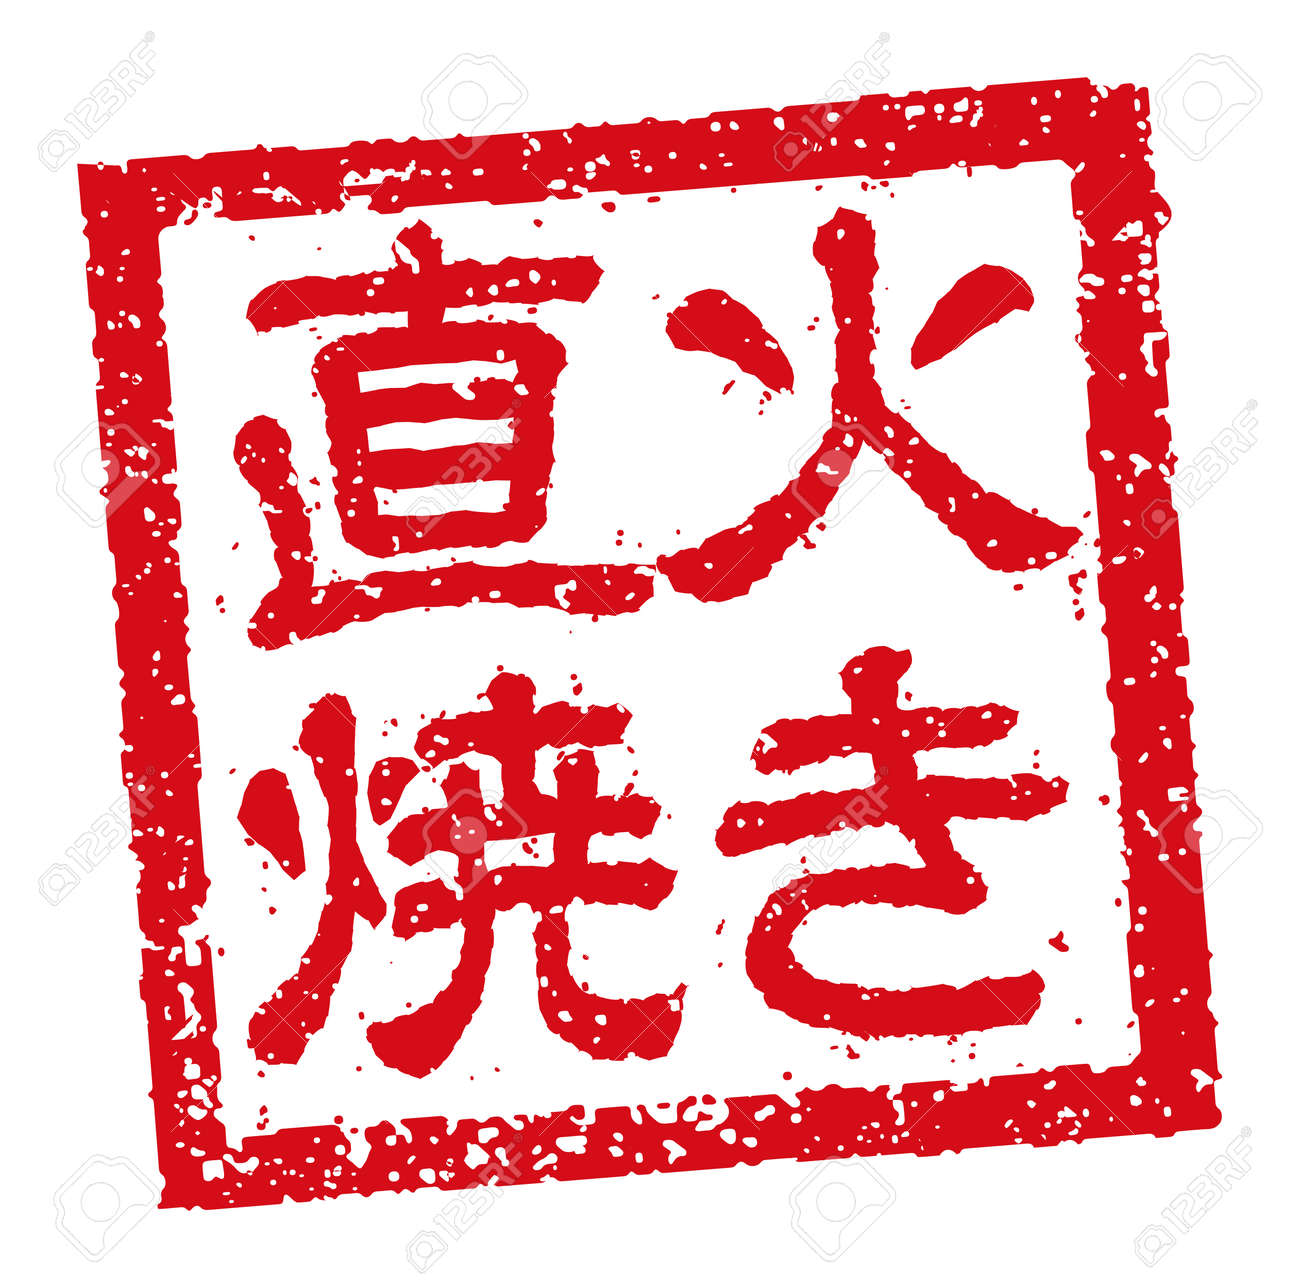 Rubber stamp illustration often used in Japanese restaurants and pubs | roast - 168885075